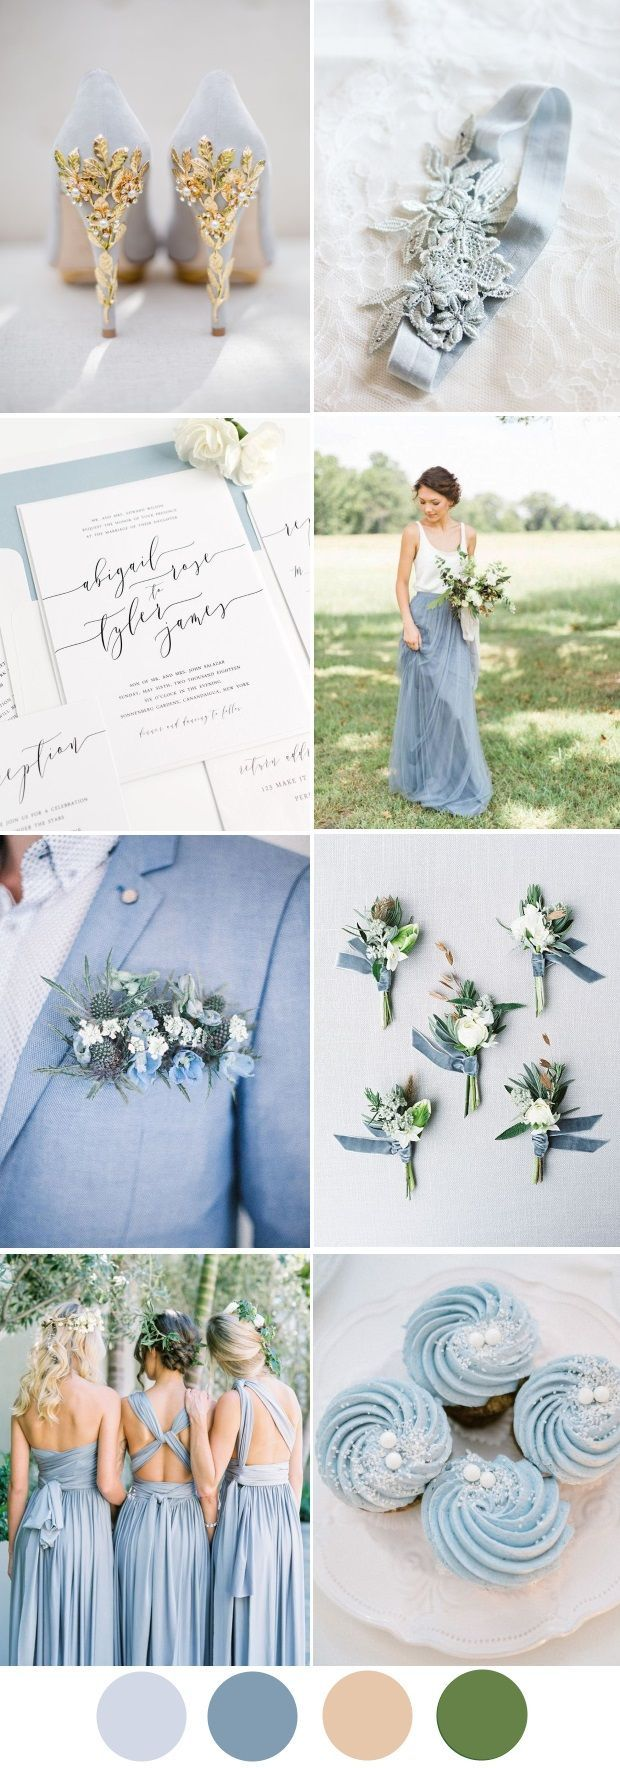 345 best Wedding ideas✓ images on Pinterest | Wedding ideas ...